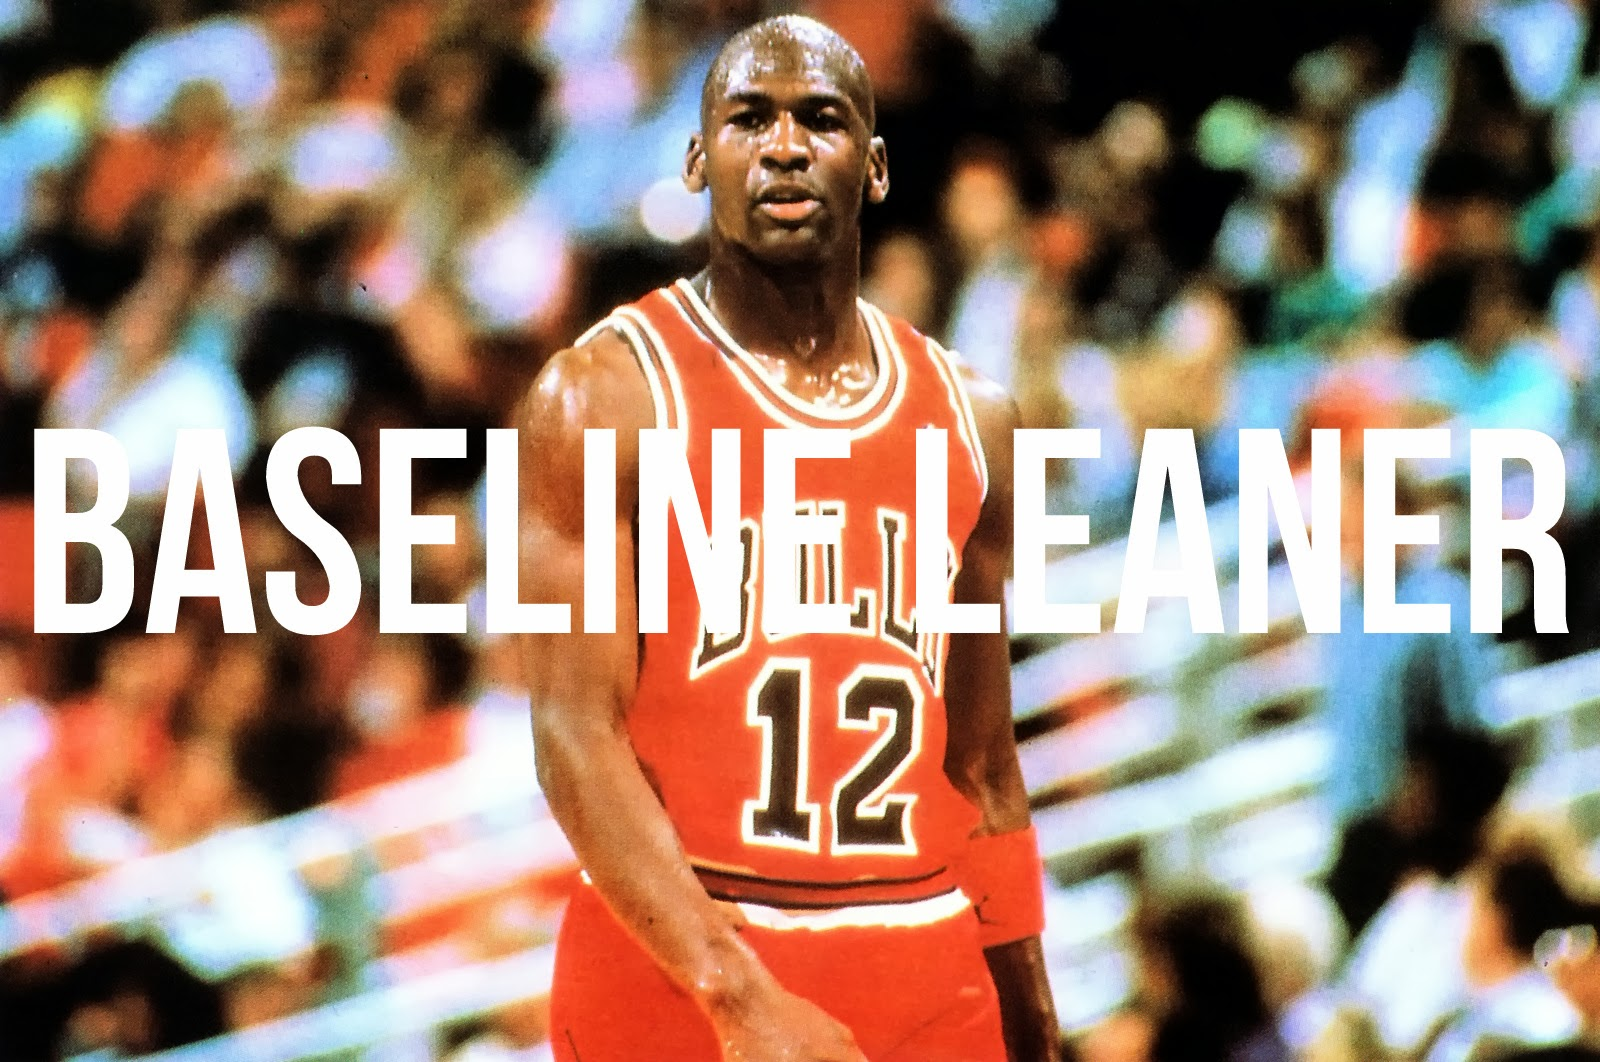 36e24acda32 On this day, Michael Jordan left his jersey at home and was forced to rock  the Rick Adelman throwback. Posted by Baseline Leaner ...